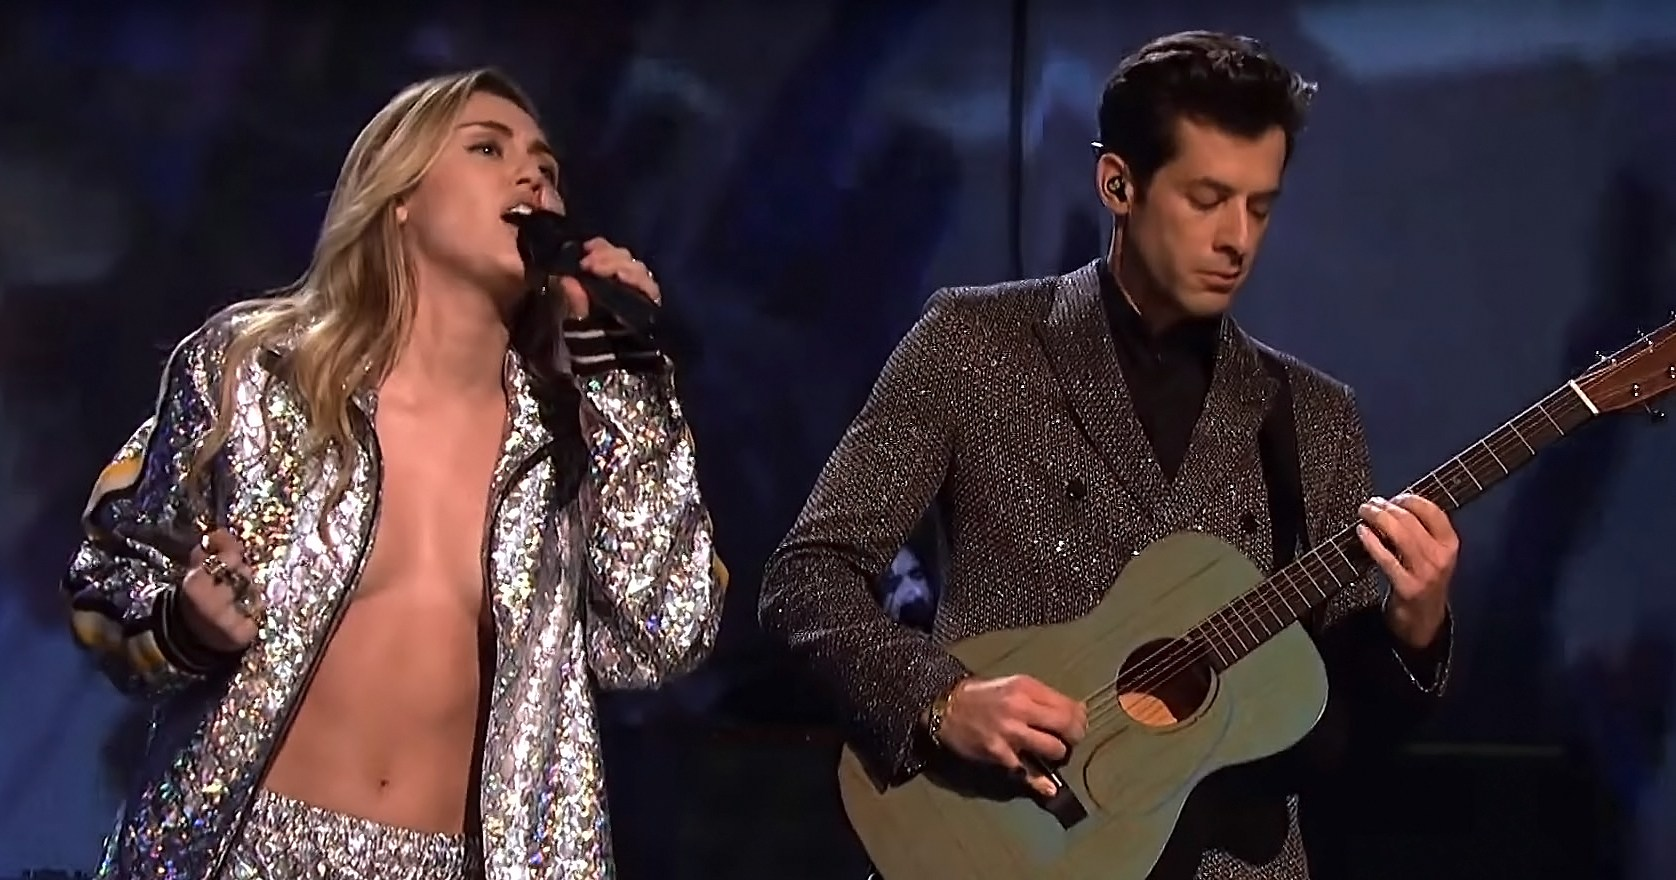 Twitter Goes Wild After Miley Cyrus Risks a Nip Slip During Performance on 'Saturday Night Live'